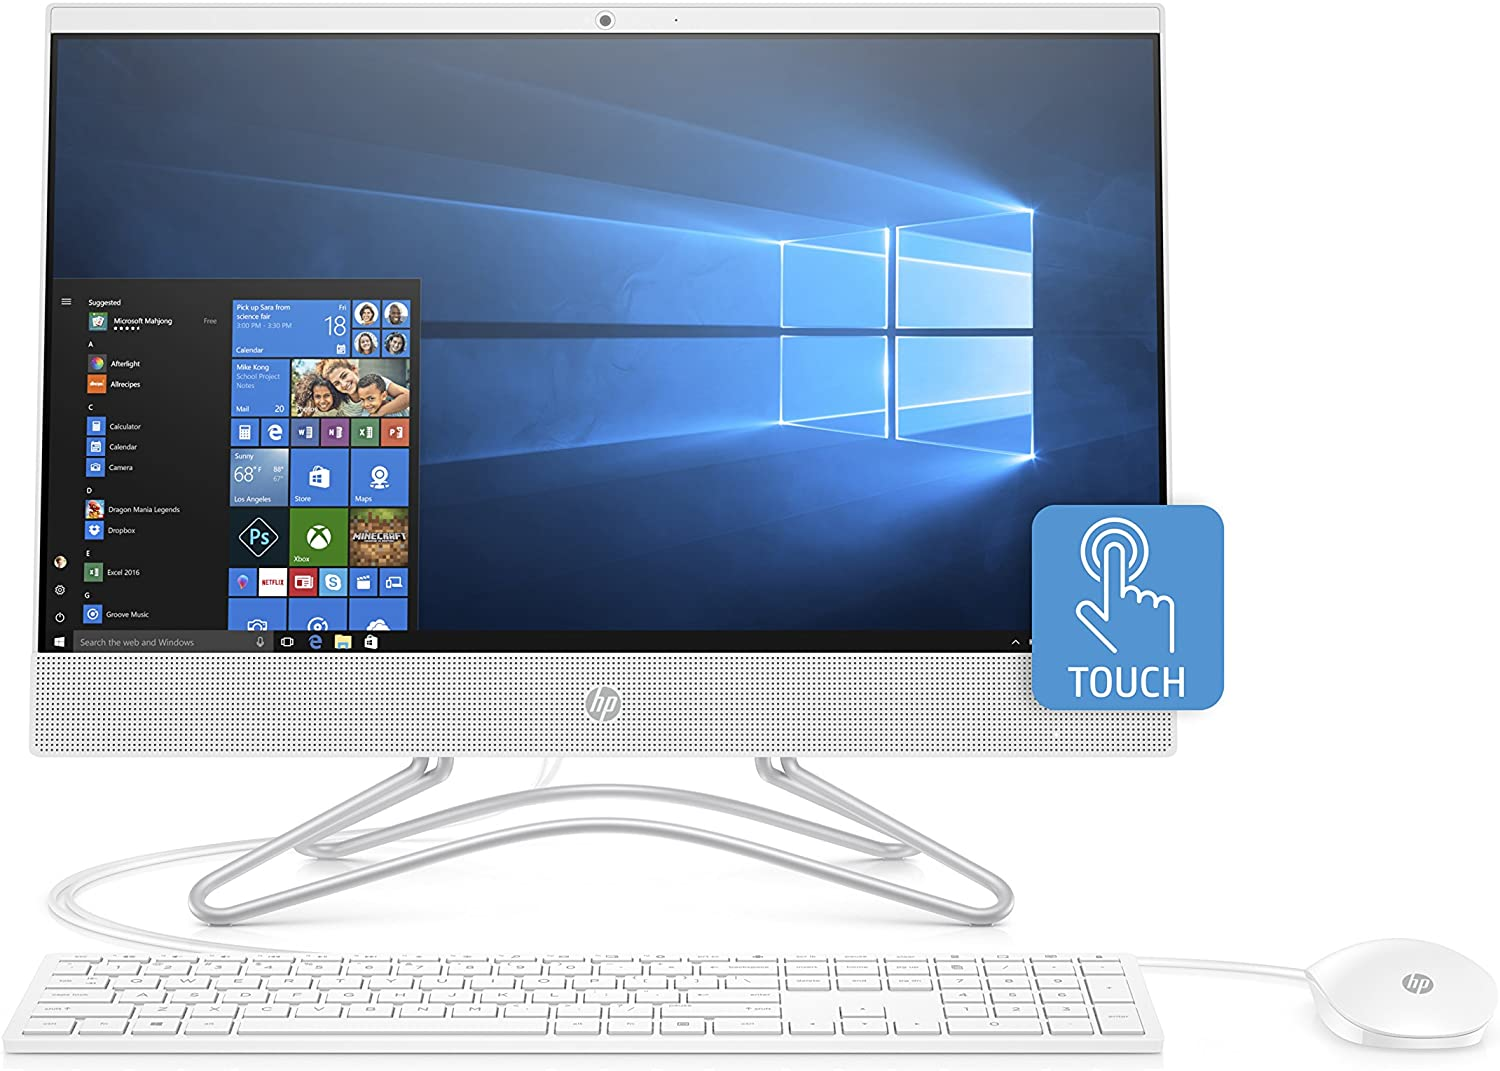 HP 22-Inch All-in-One Computer, Intel Core i3-8130U, 4GB RAM, 1TB Hard Drive, Windows 10 (22-c0030, White)